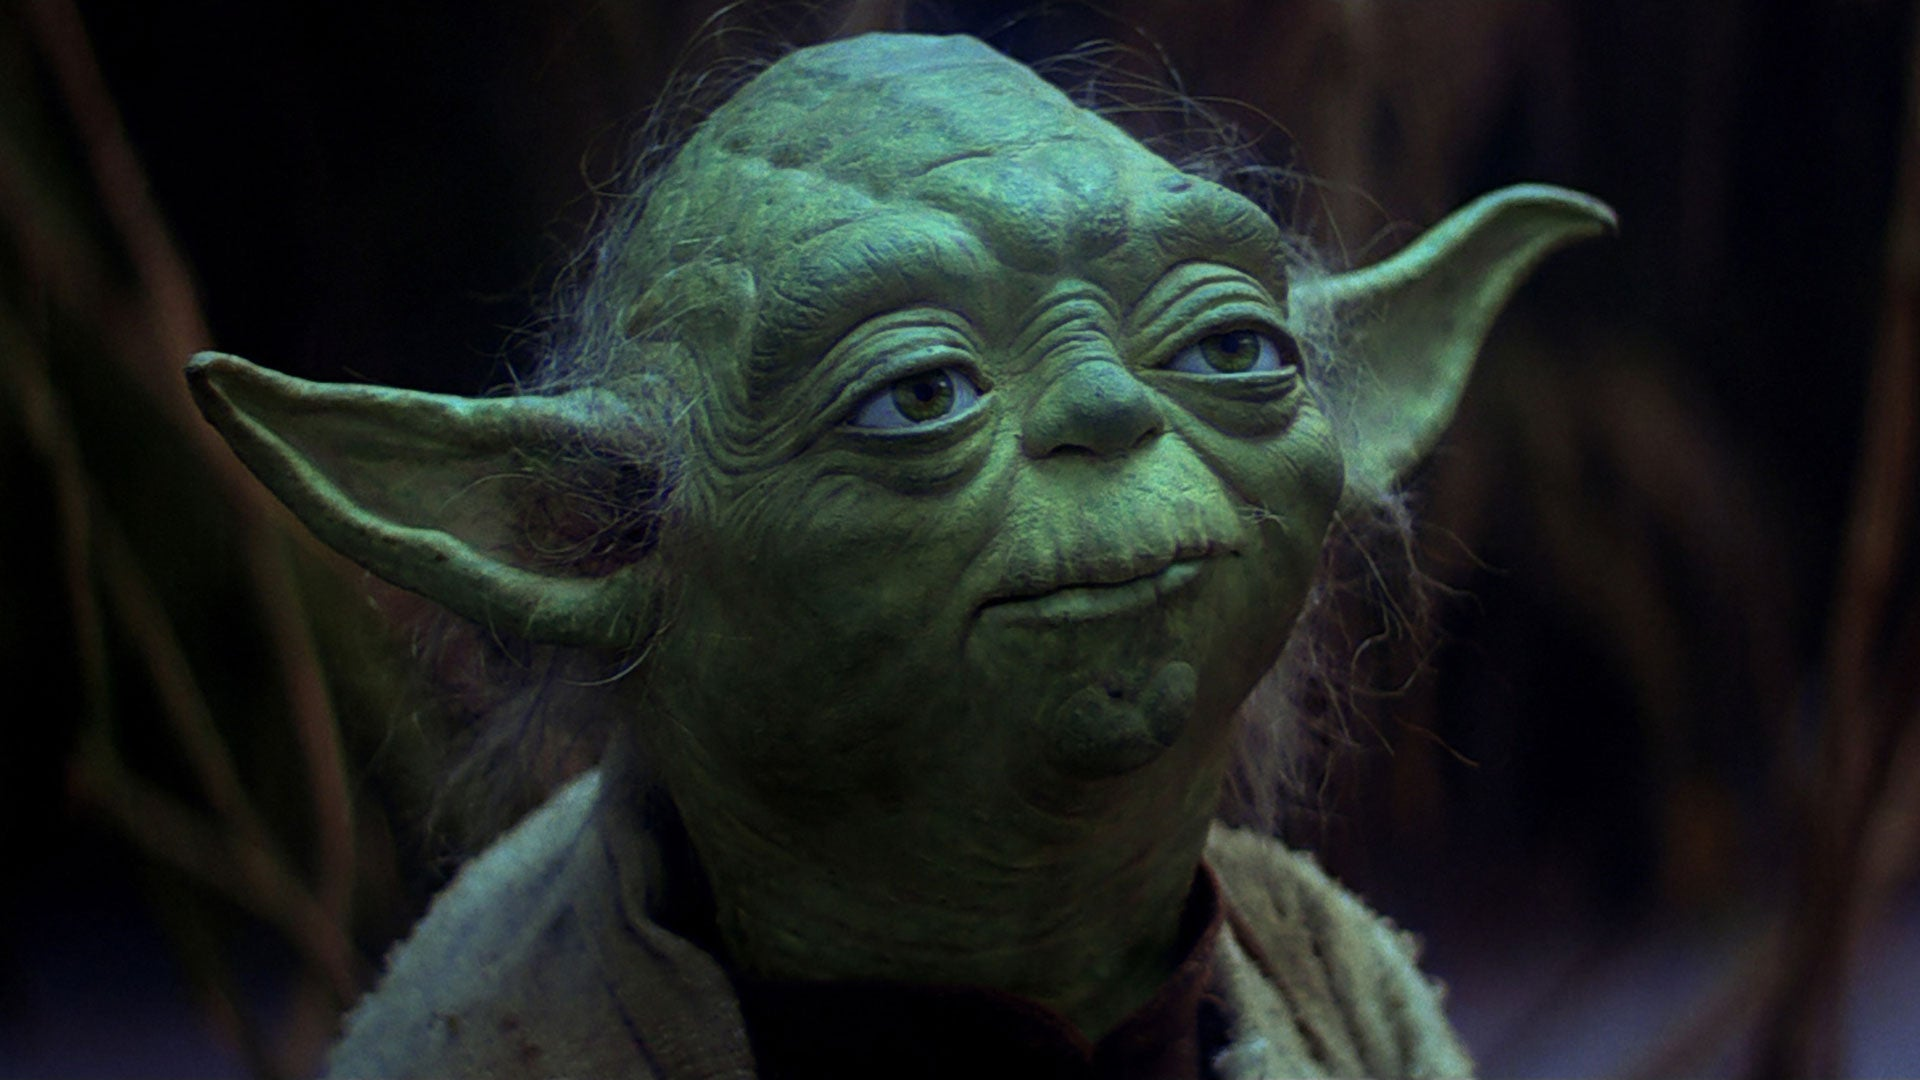 yoda empire strikes back wallpaper - photo #28